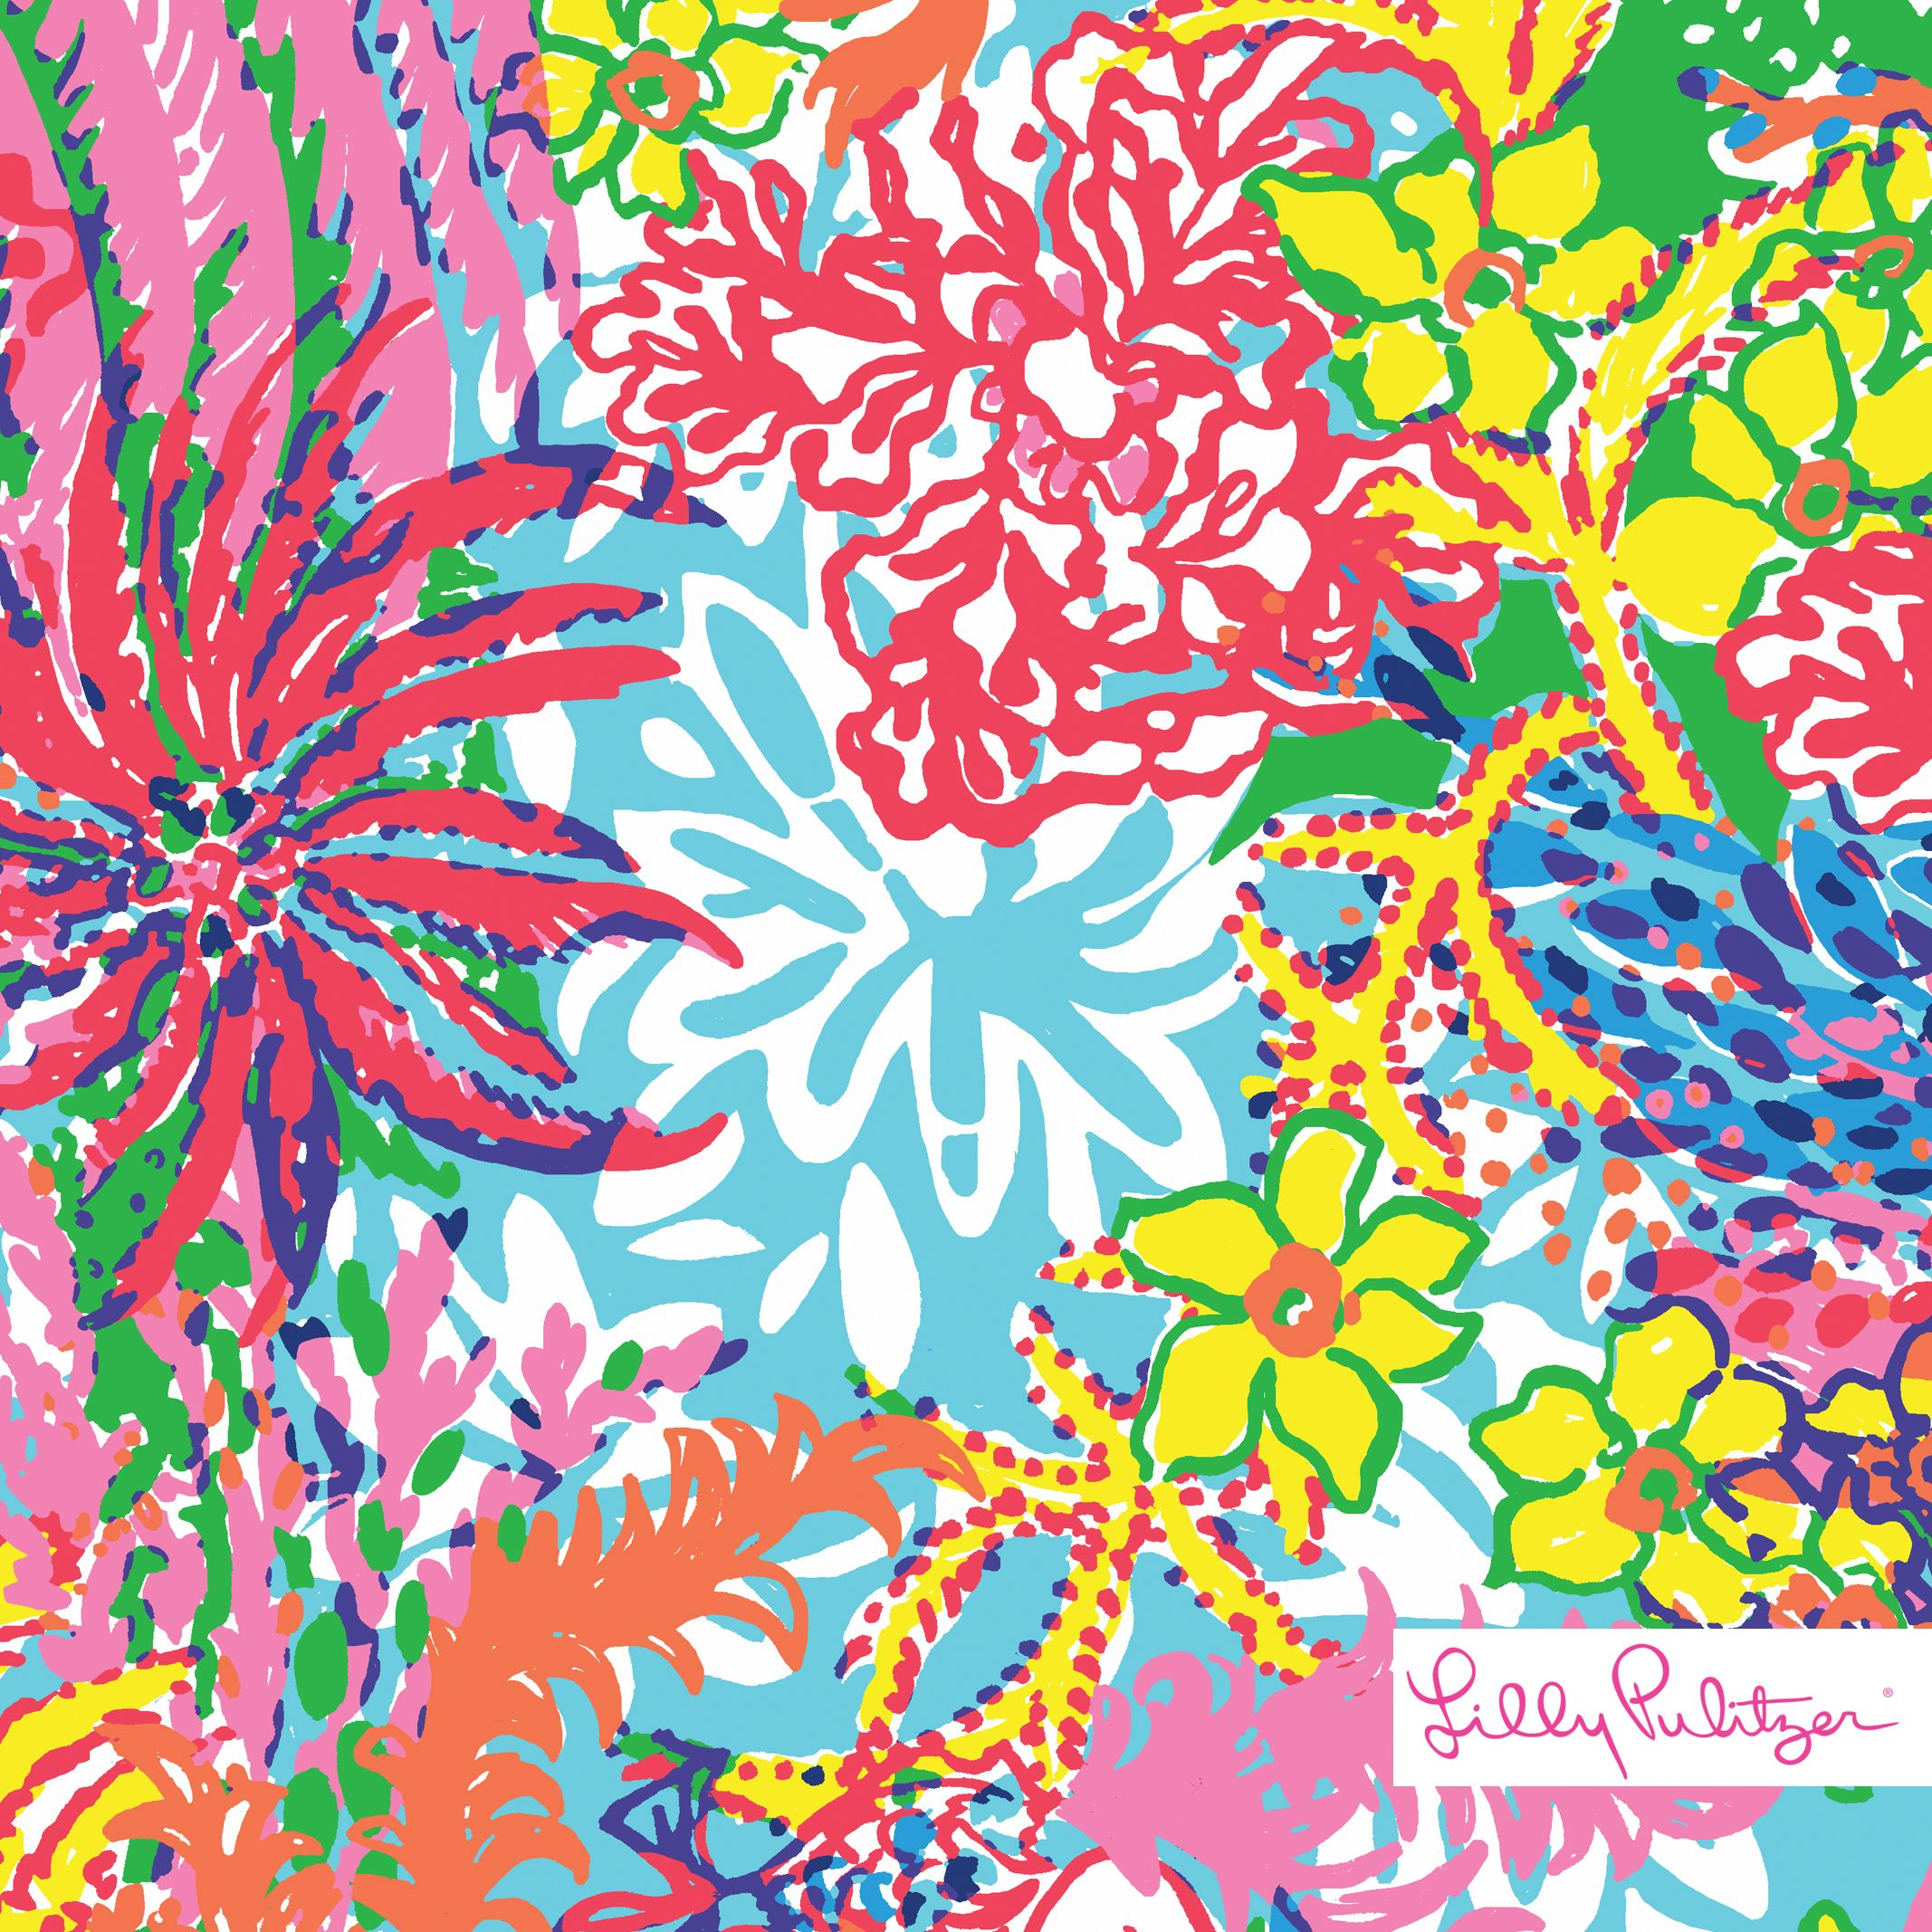 Lilly Pulitzer Fishing for Compliments Print   Printed   Pinterest ...